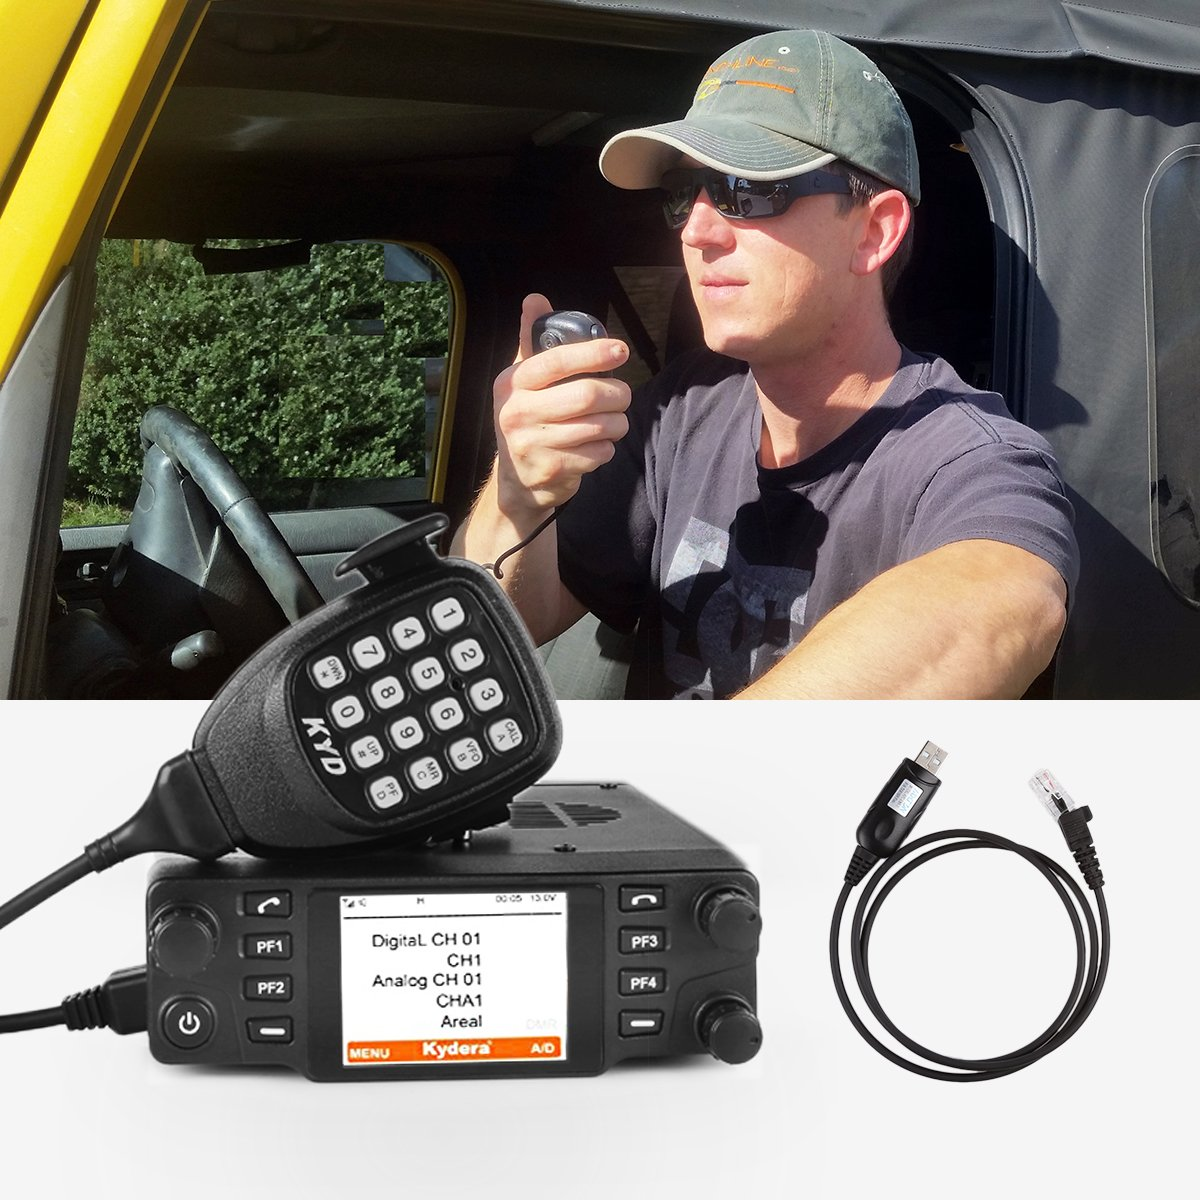 Kydera CDM-550H DMR 400-430 440-480Mhz UHF Large LCF Display 40W 25KM Digital Car Radio Ham Transceiver, with Programming Cable & Software by KYDERA (Image #8)